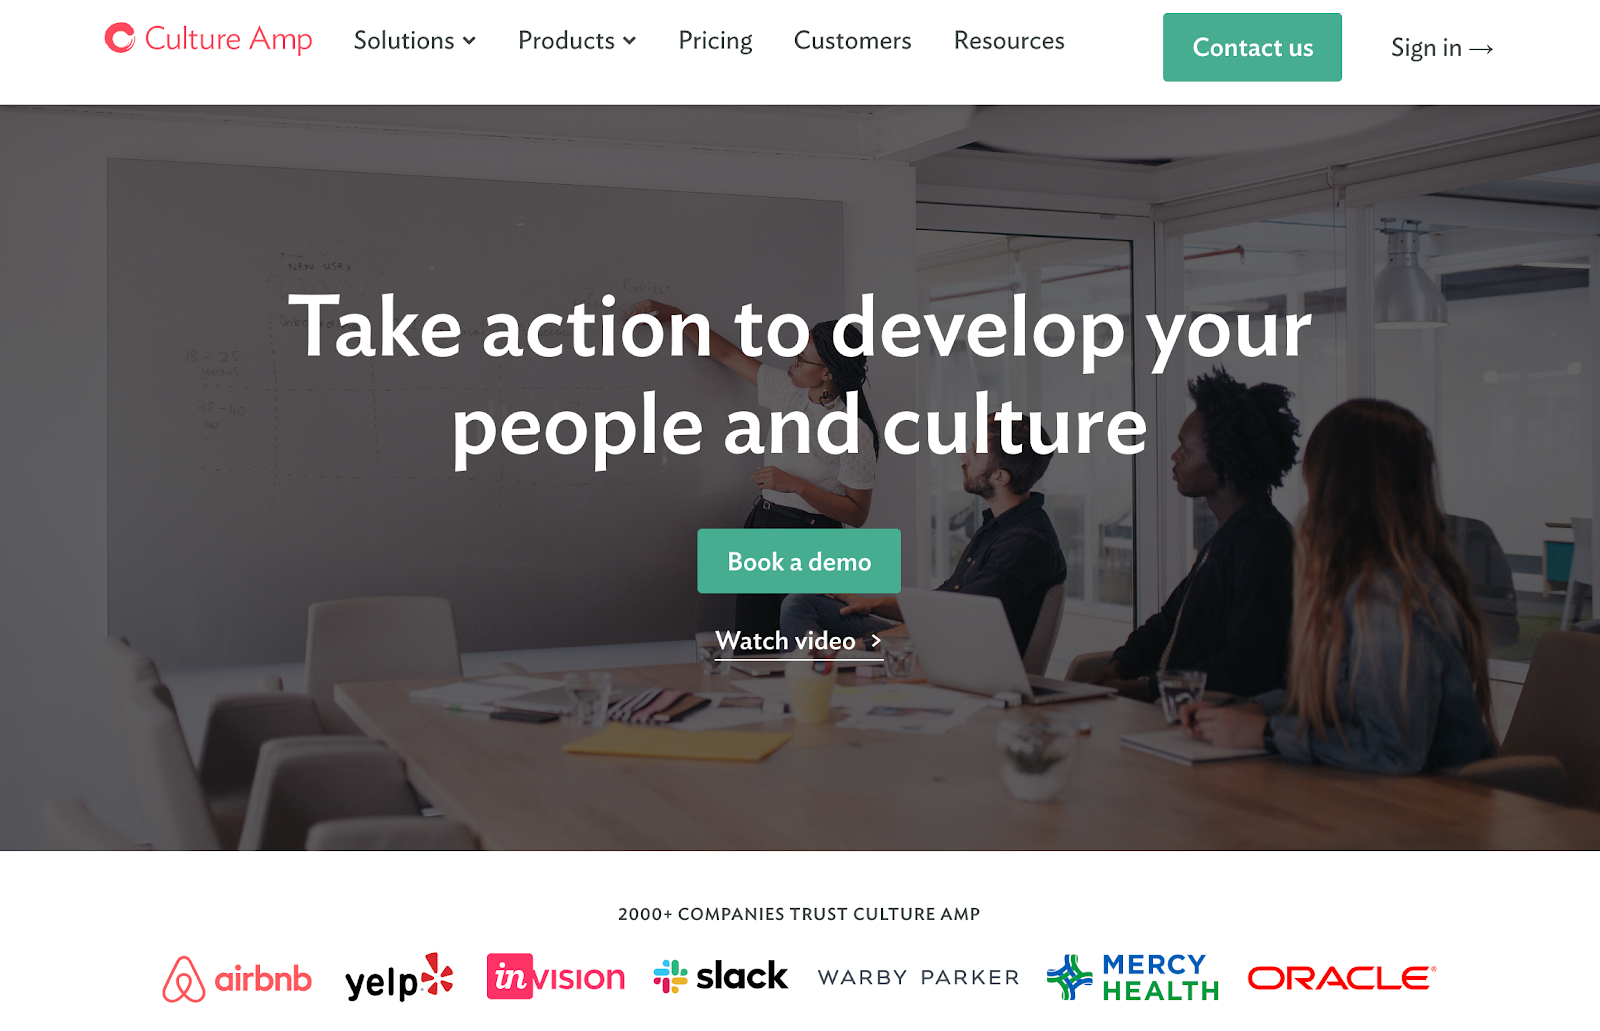 Screenshot of Culture Amp website